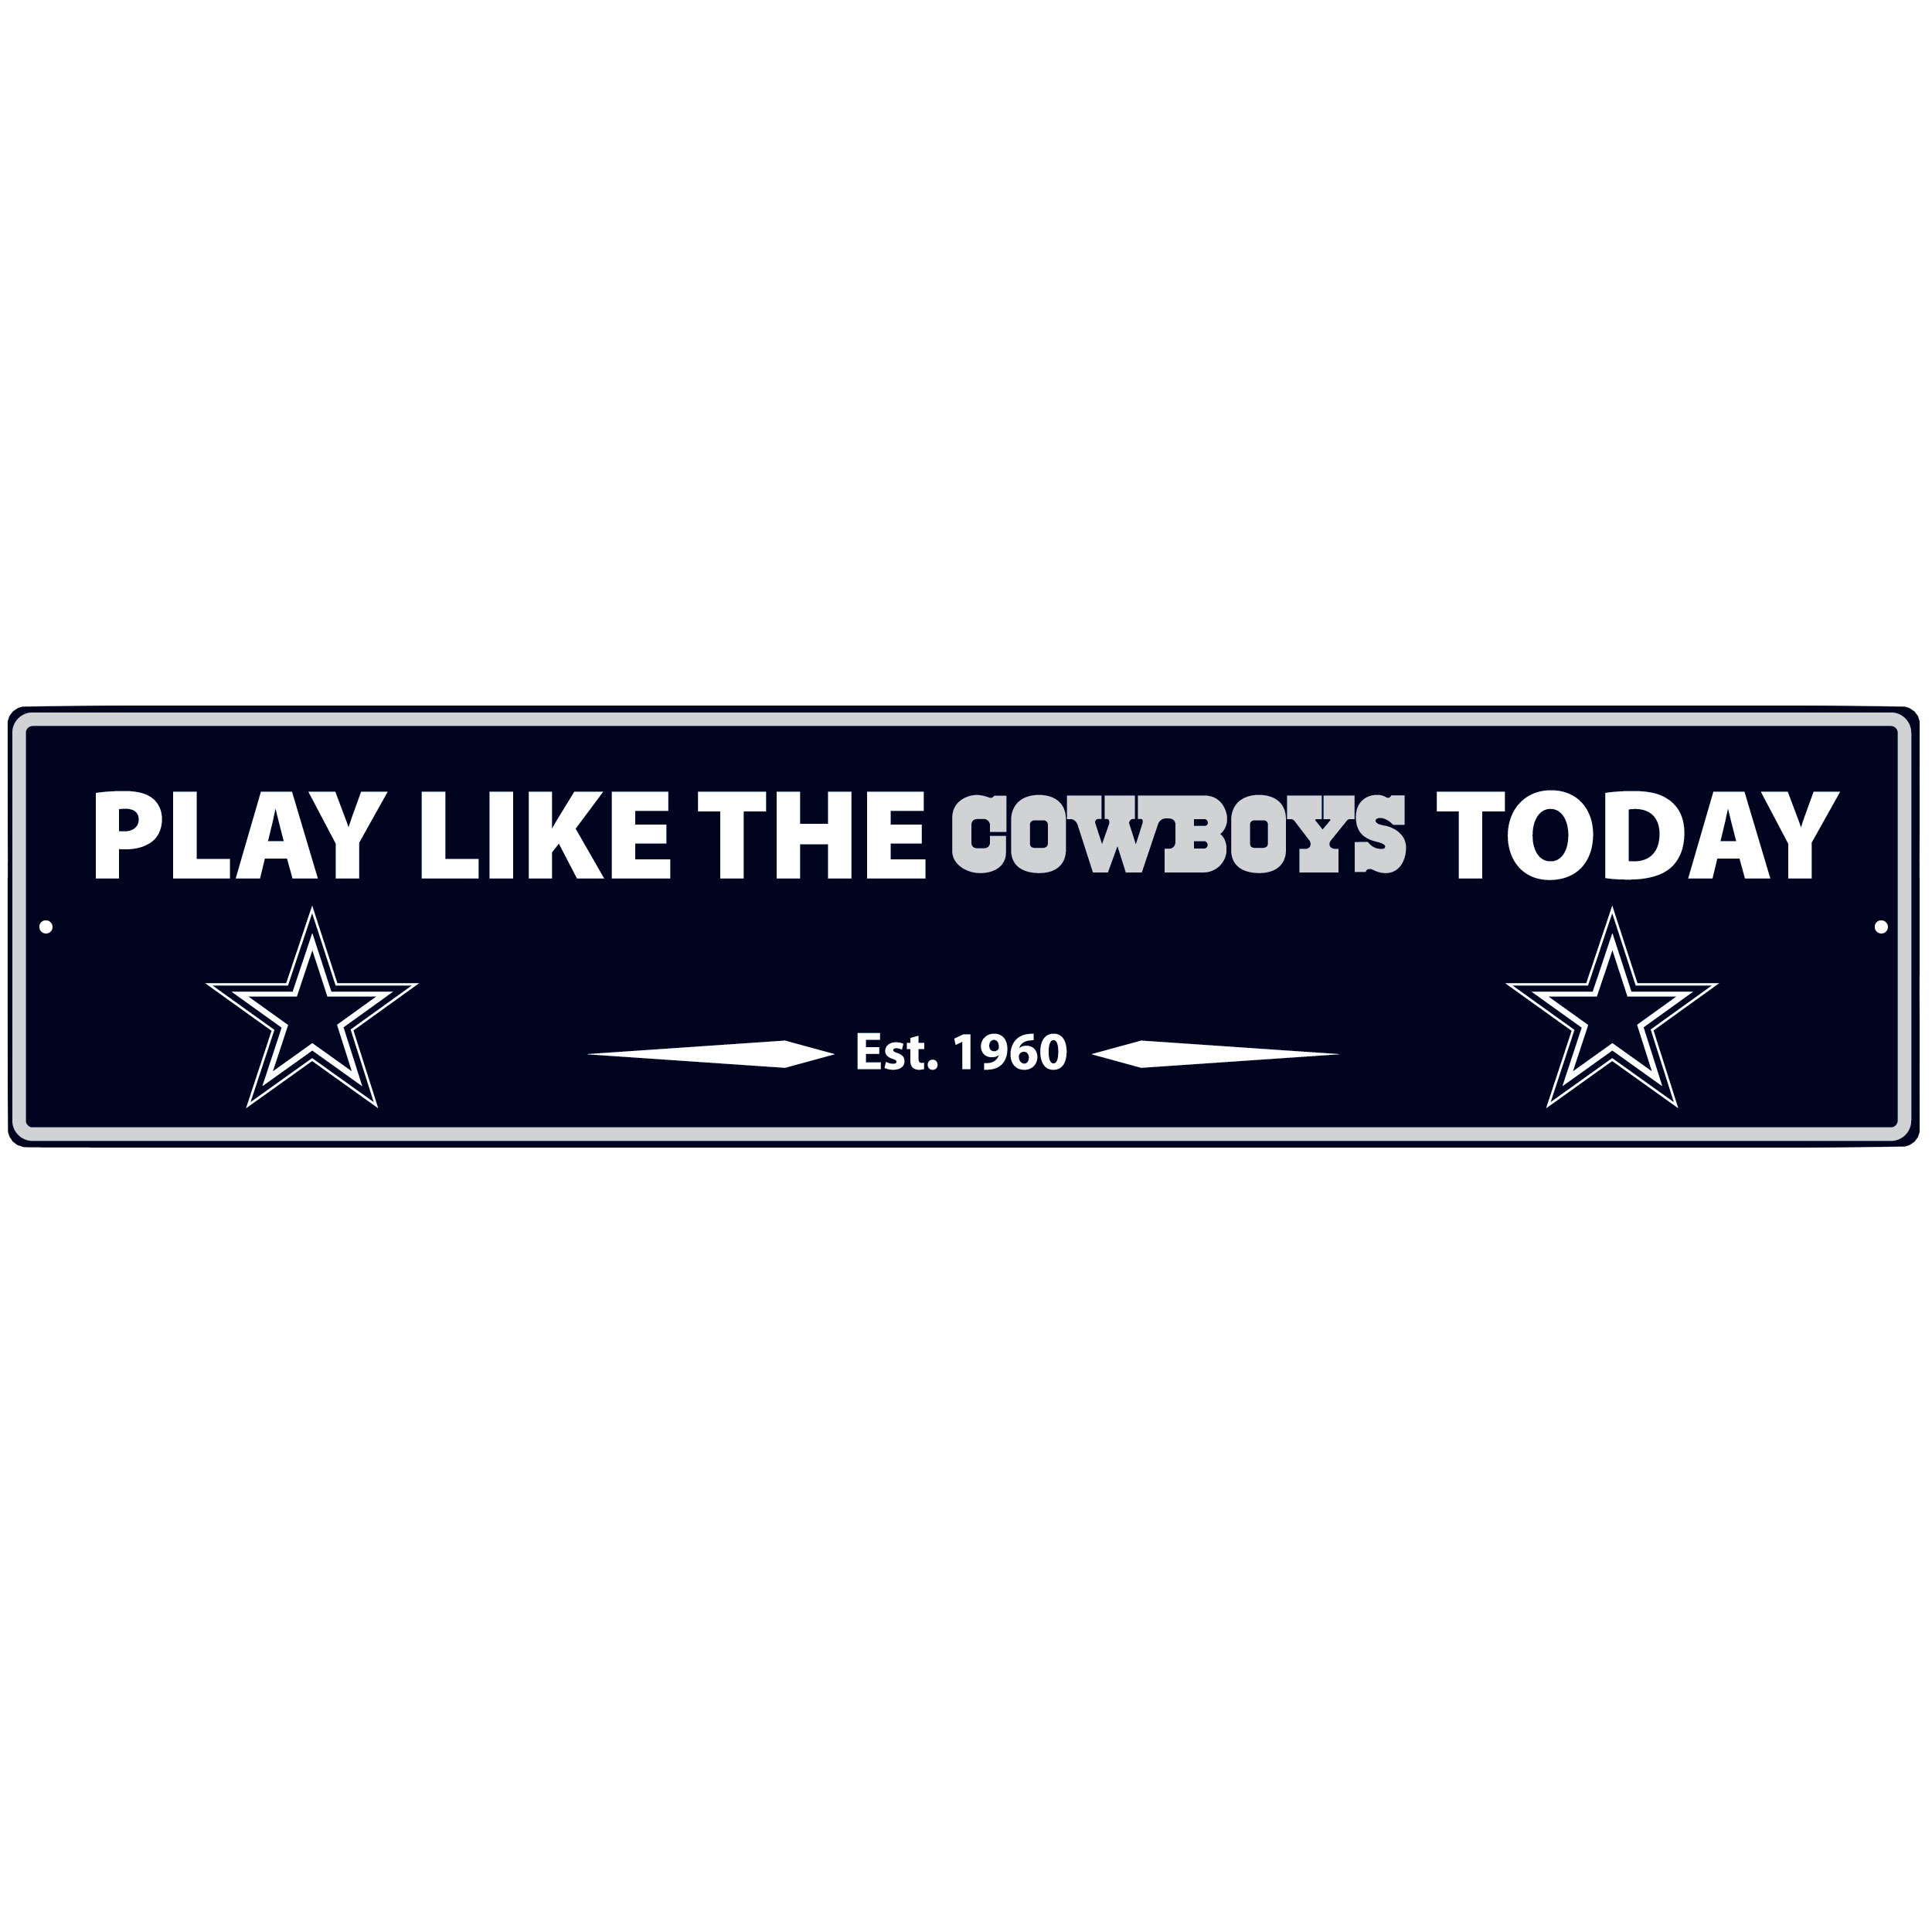 Dallas Cowboys Street Sign Wall Plaque - This motivational plaque is perfect for hanging over the doorway of your fan cave reminding you to play like your champion Dallas Cowboys! The sign is 20 inches wide and made of light-weight stamped aluminum. The bright team colors and classic design make this a must-have home décor accessory that would look great in any game room, living room or office!